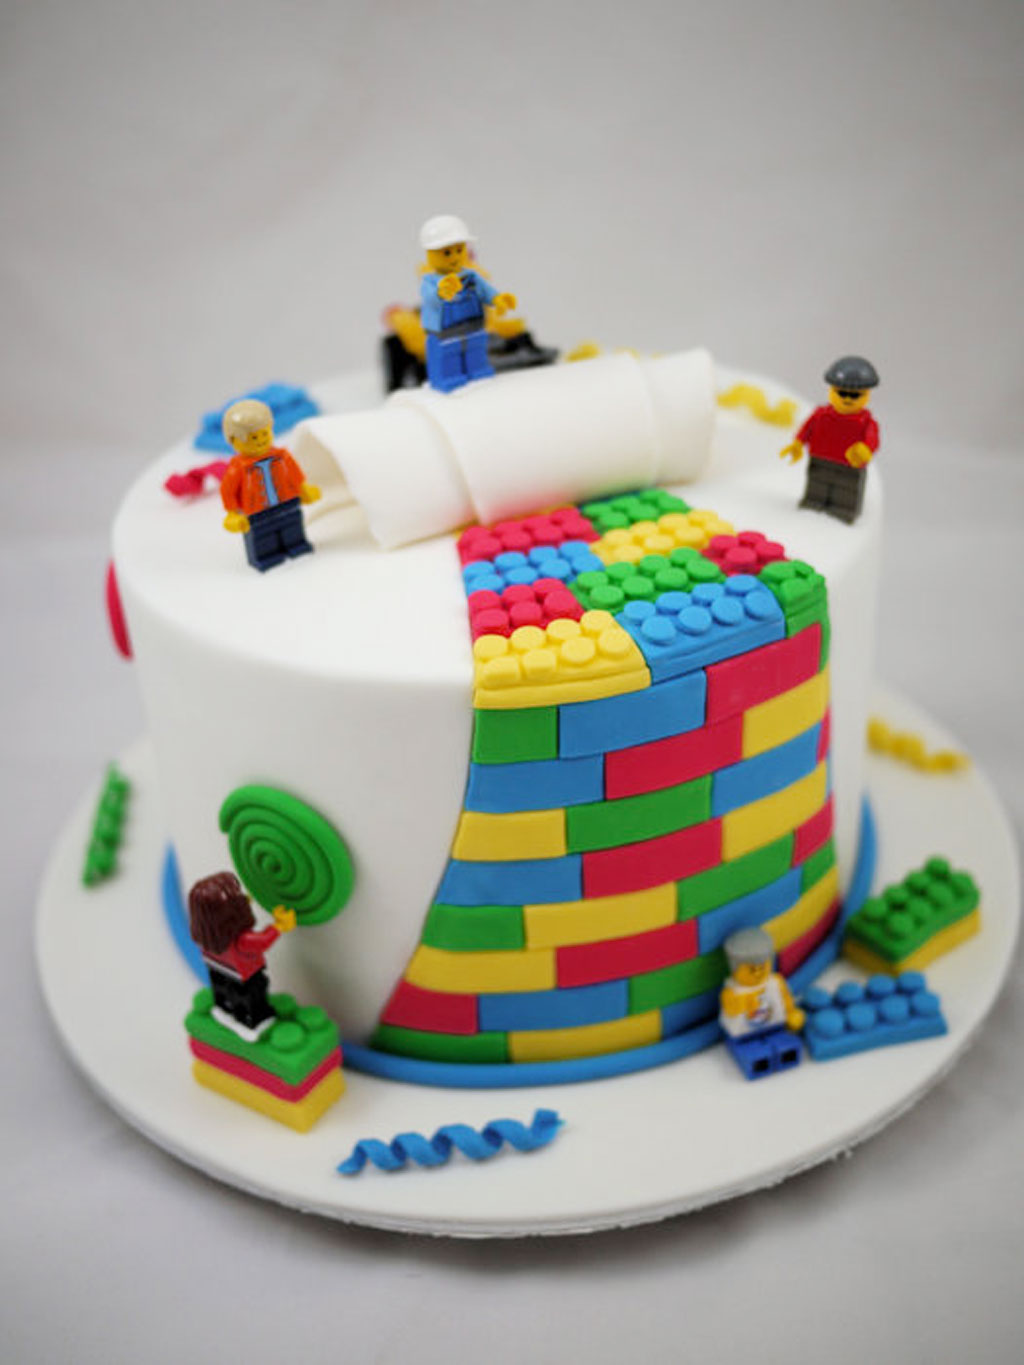 Birthday Cake Decoration Images : Lego Birthday Cake Decorating Birthday Cake - Cake Ideas ...